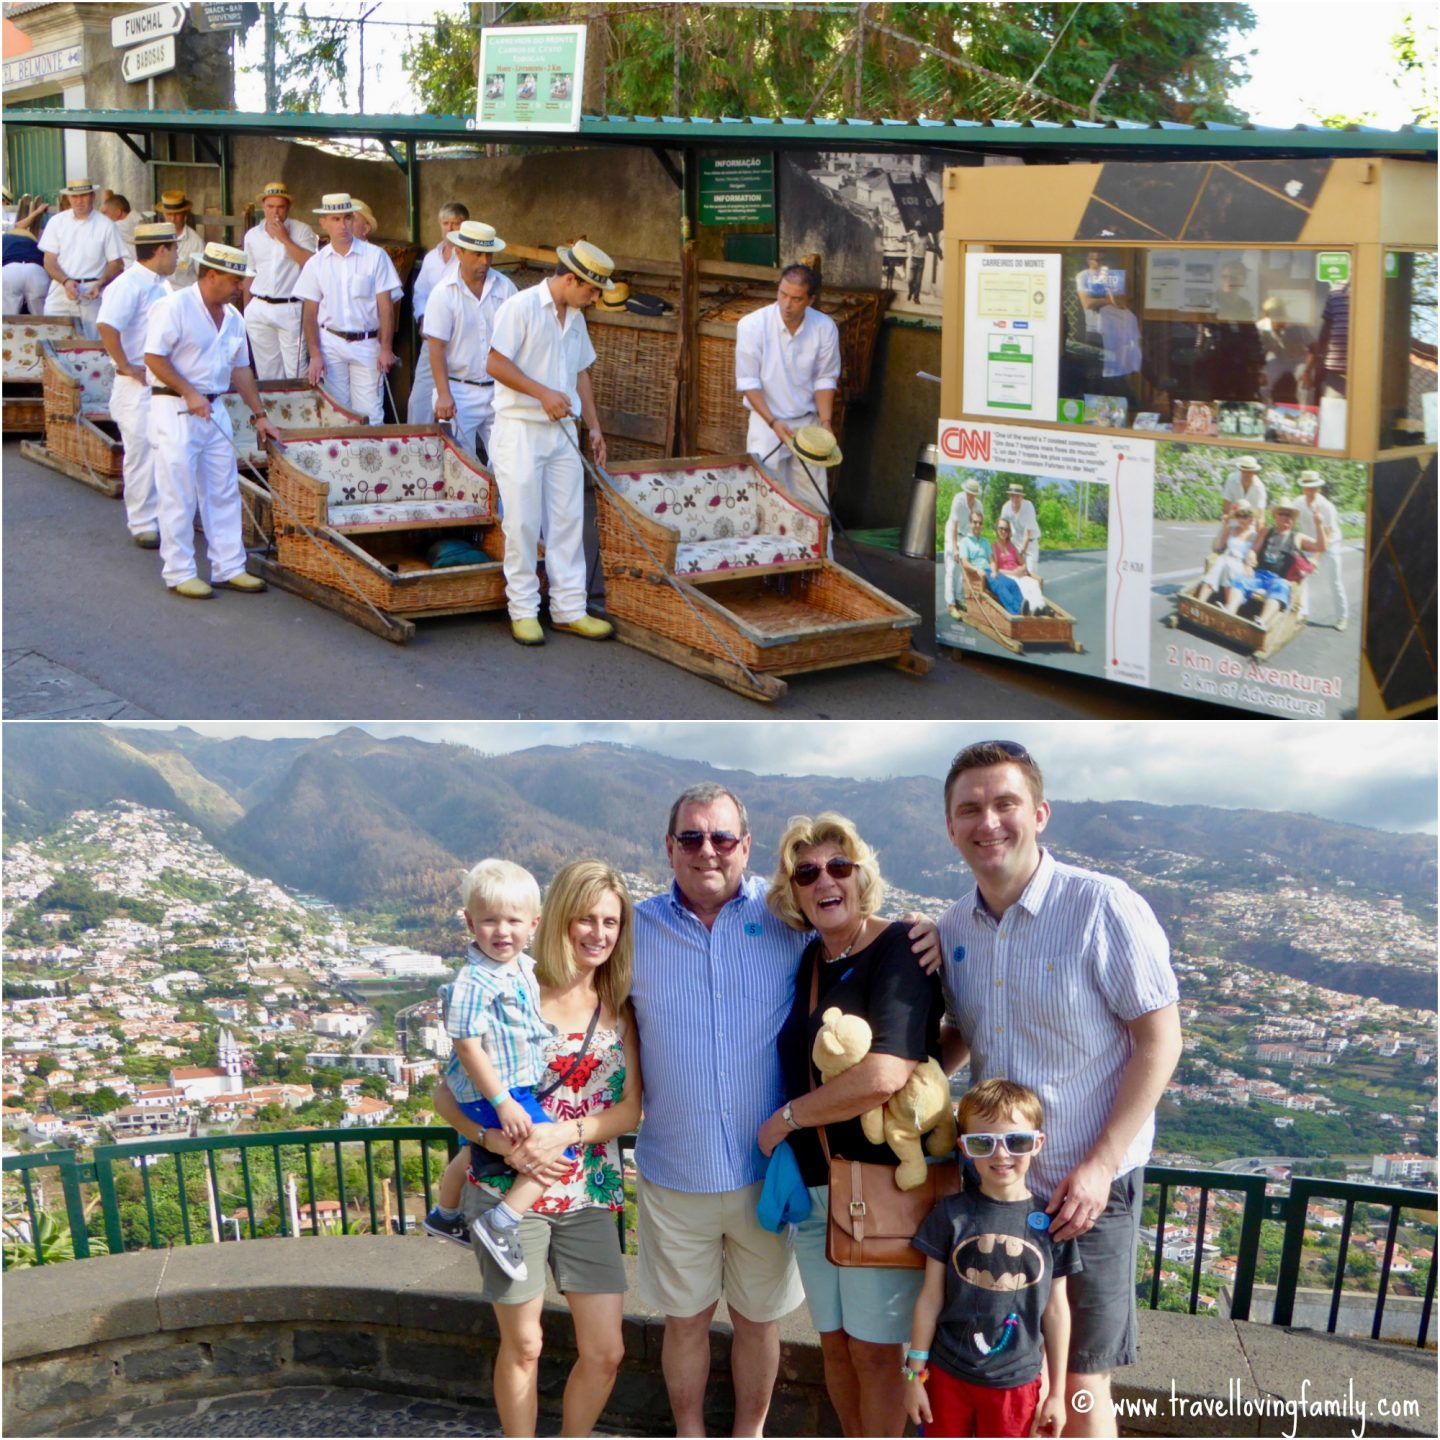 Booking shore excursions v's sightseeing independently